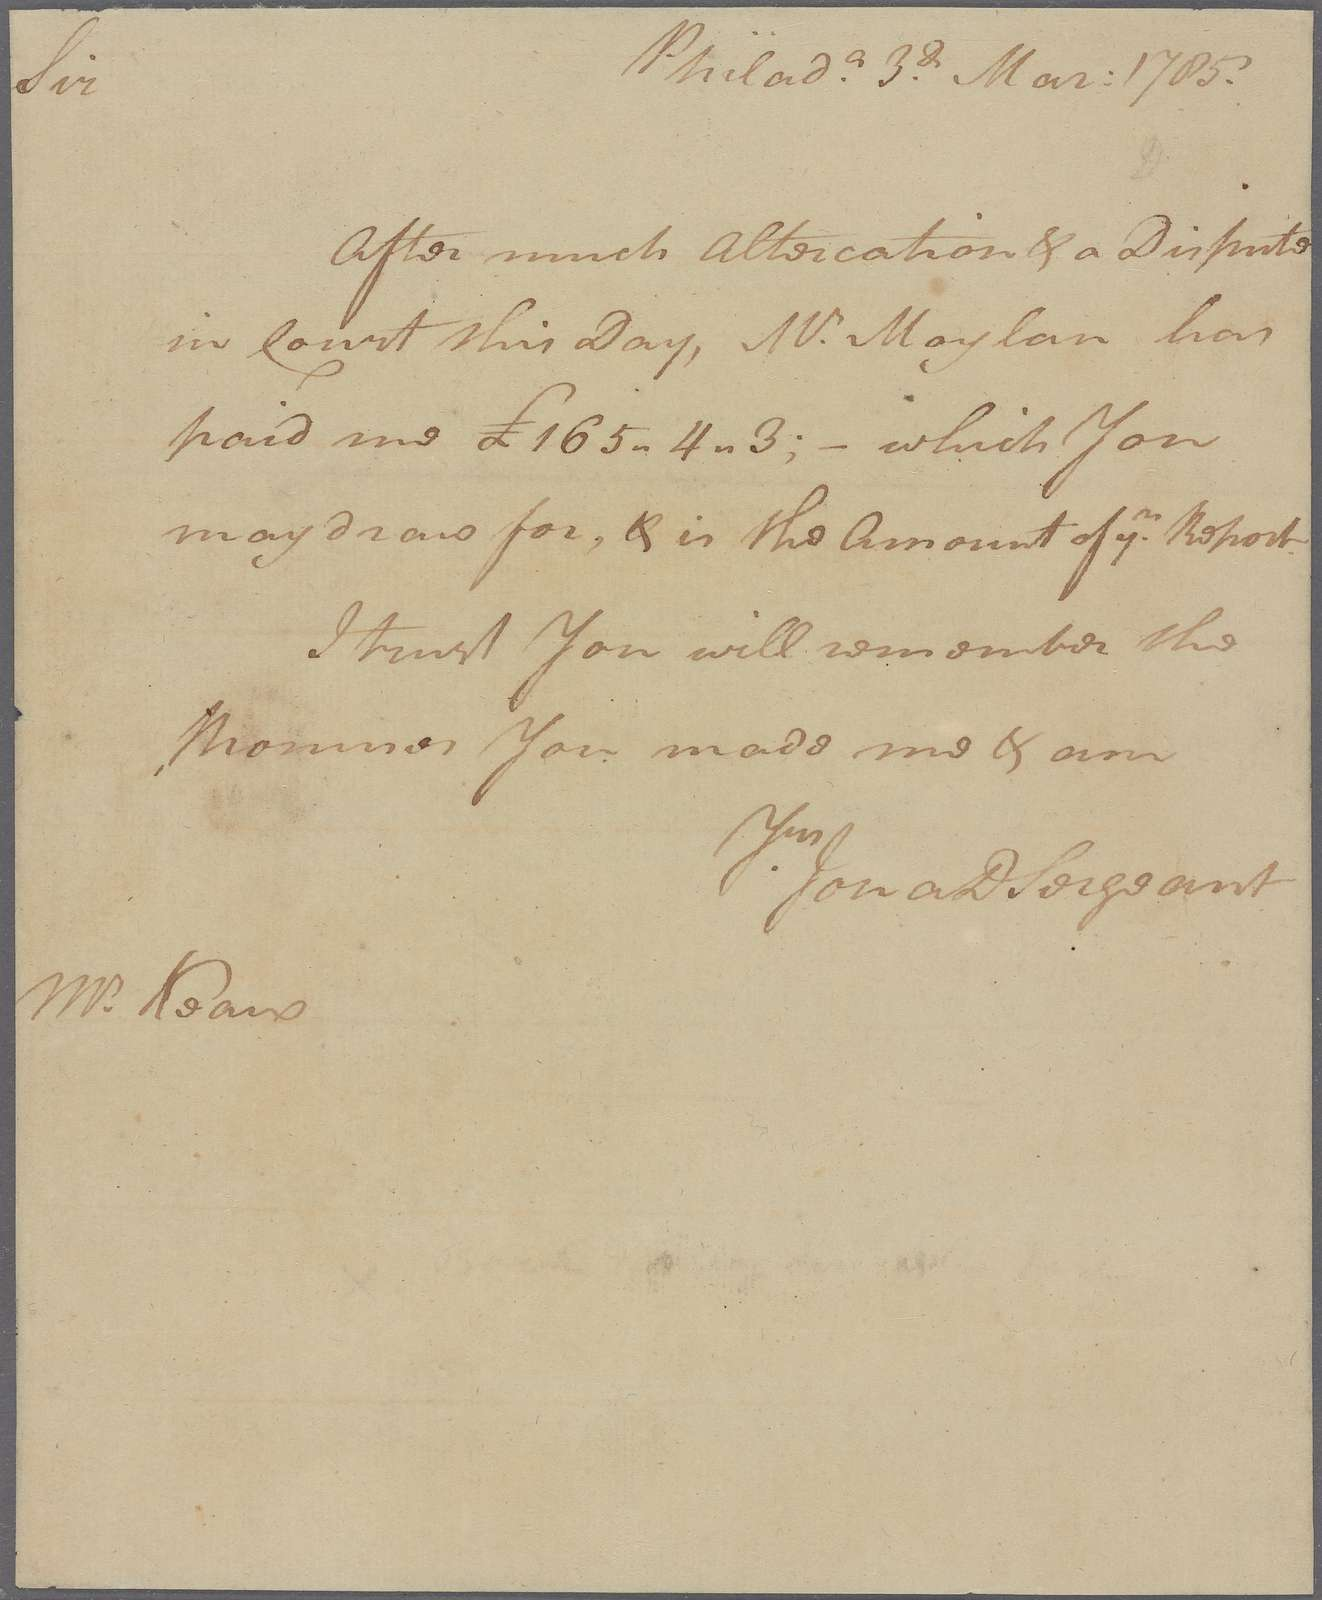 Letter to John Kean, Head of Wye River, Eastern Shore, Maryland